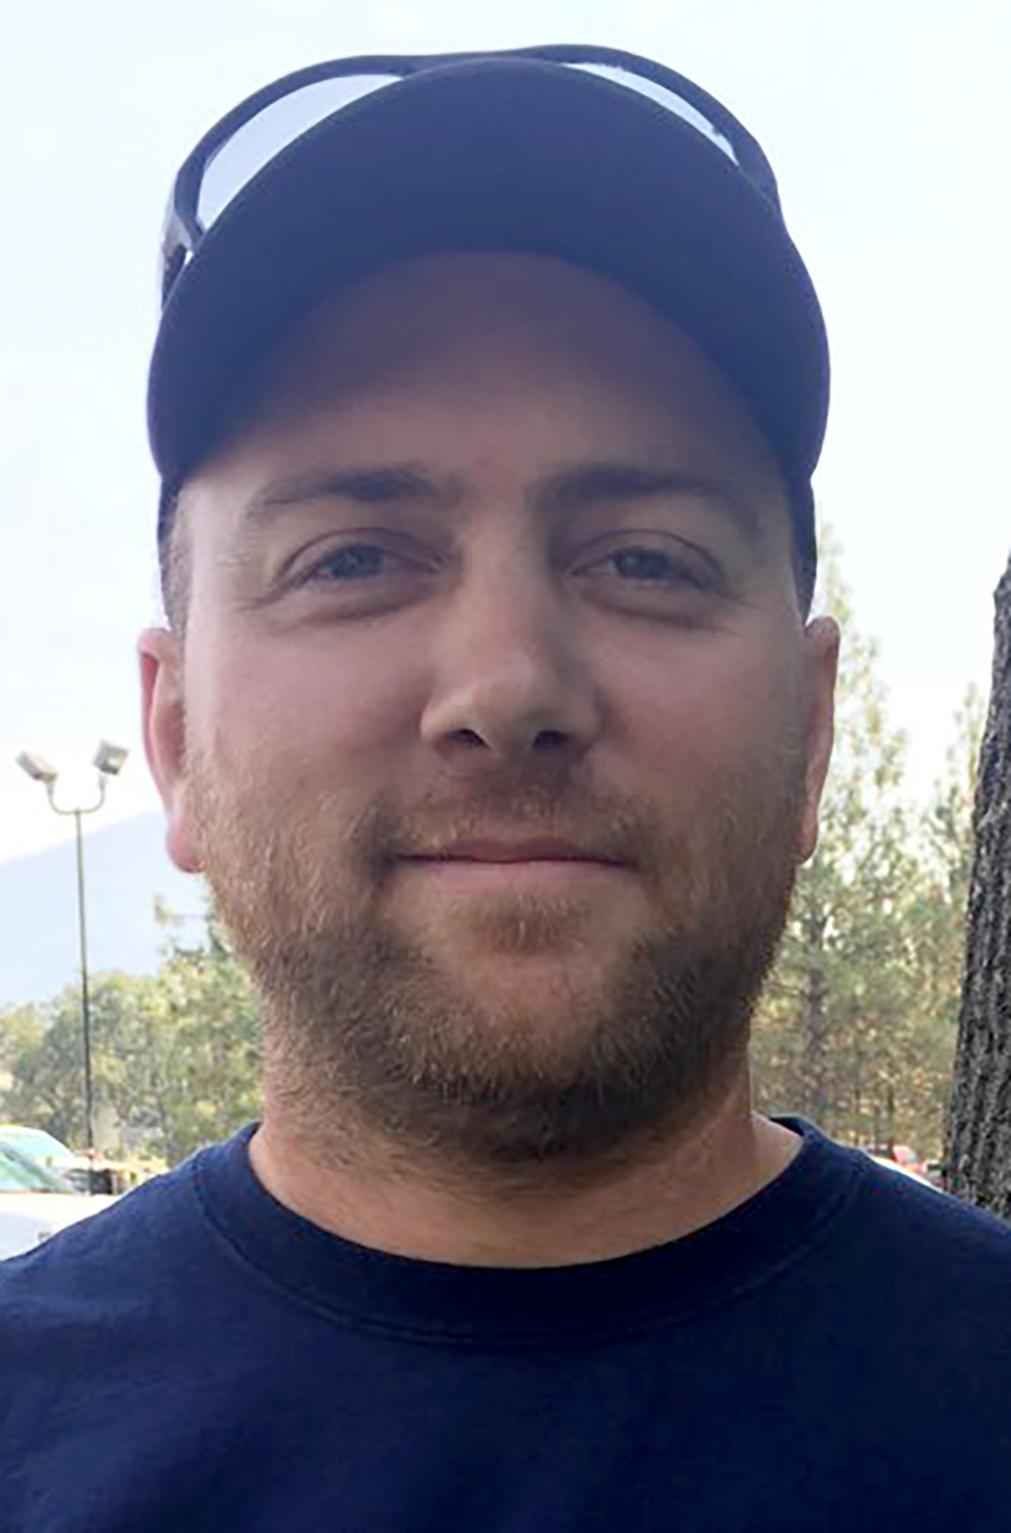 Cody Nevotti, 33, Grants Pass, Hugo Road